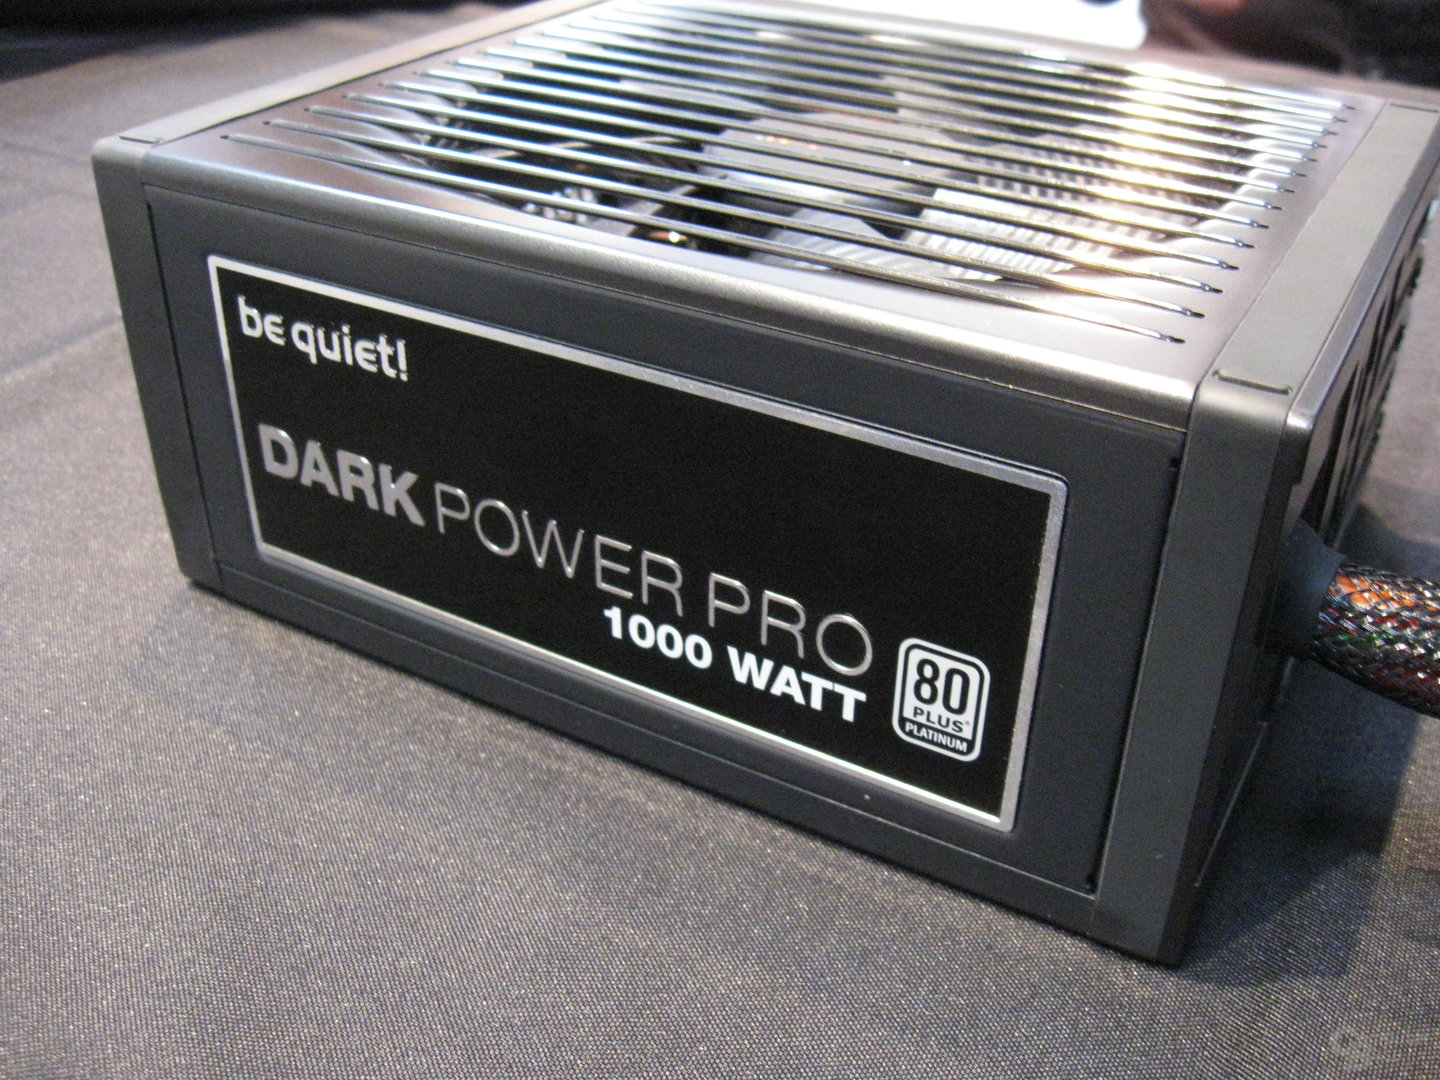 be quiet! Dark Power Pro P11 – Seitenansicht